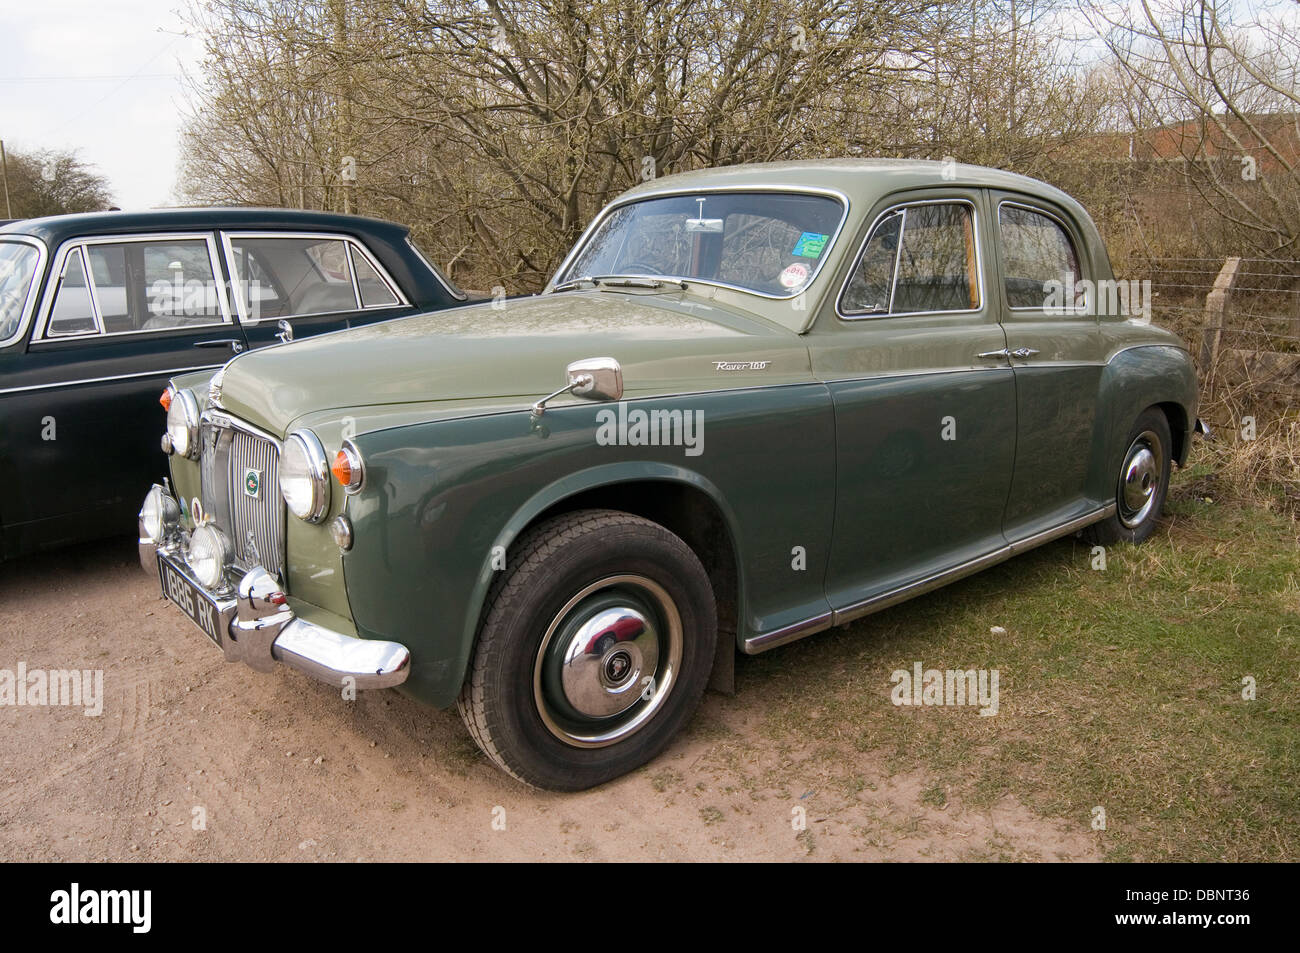 rover p4 classic car cars british english old family. Black Bedroom Furniture Sets. Home Design Ideas